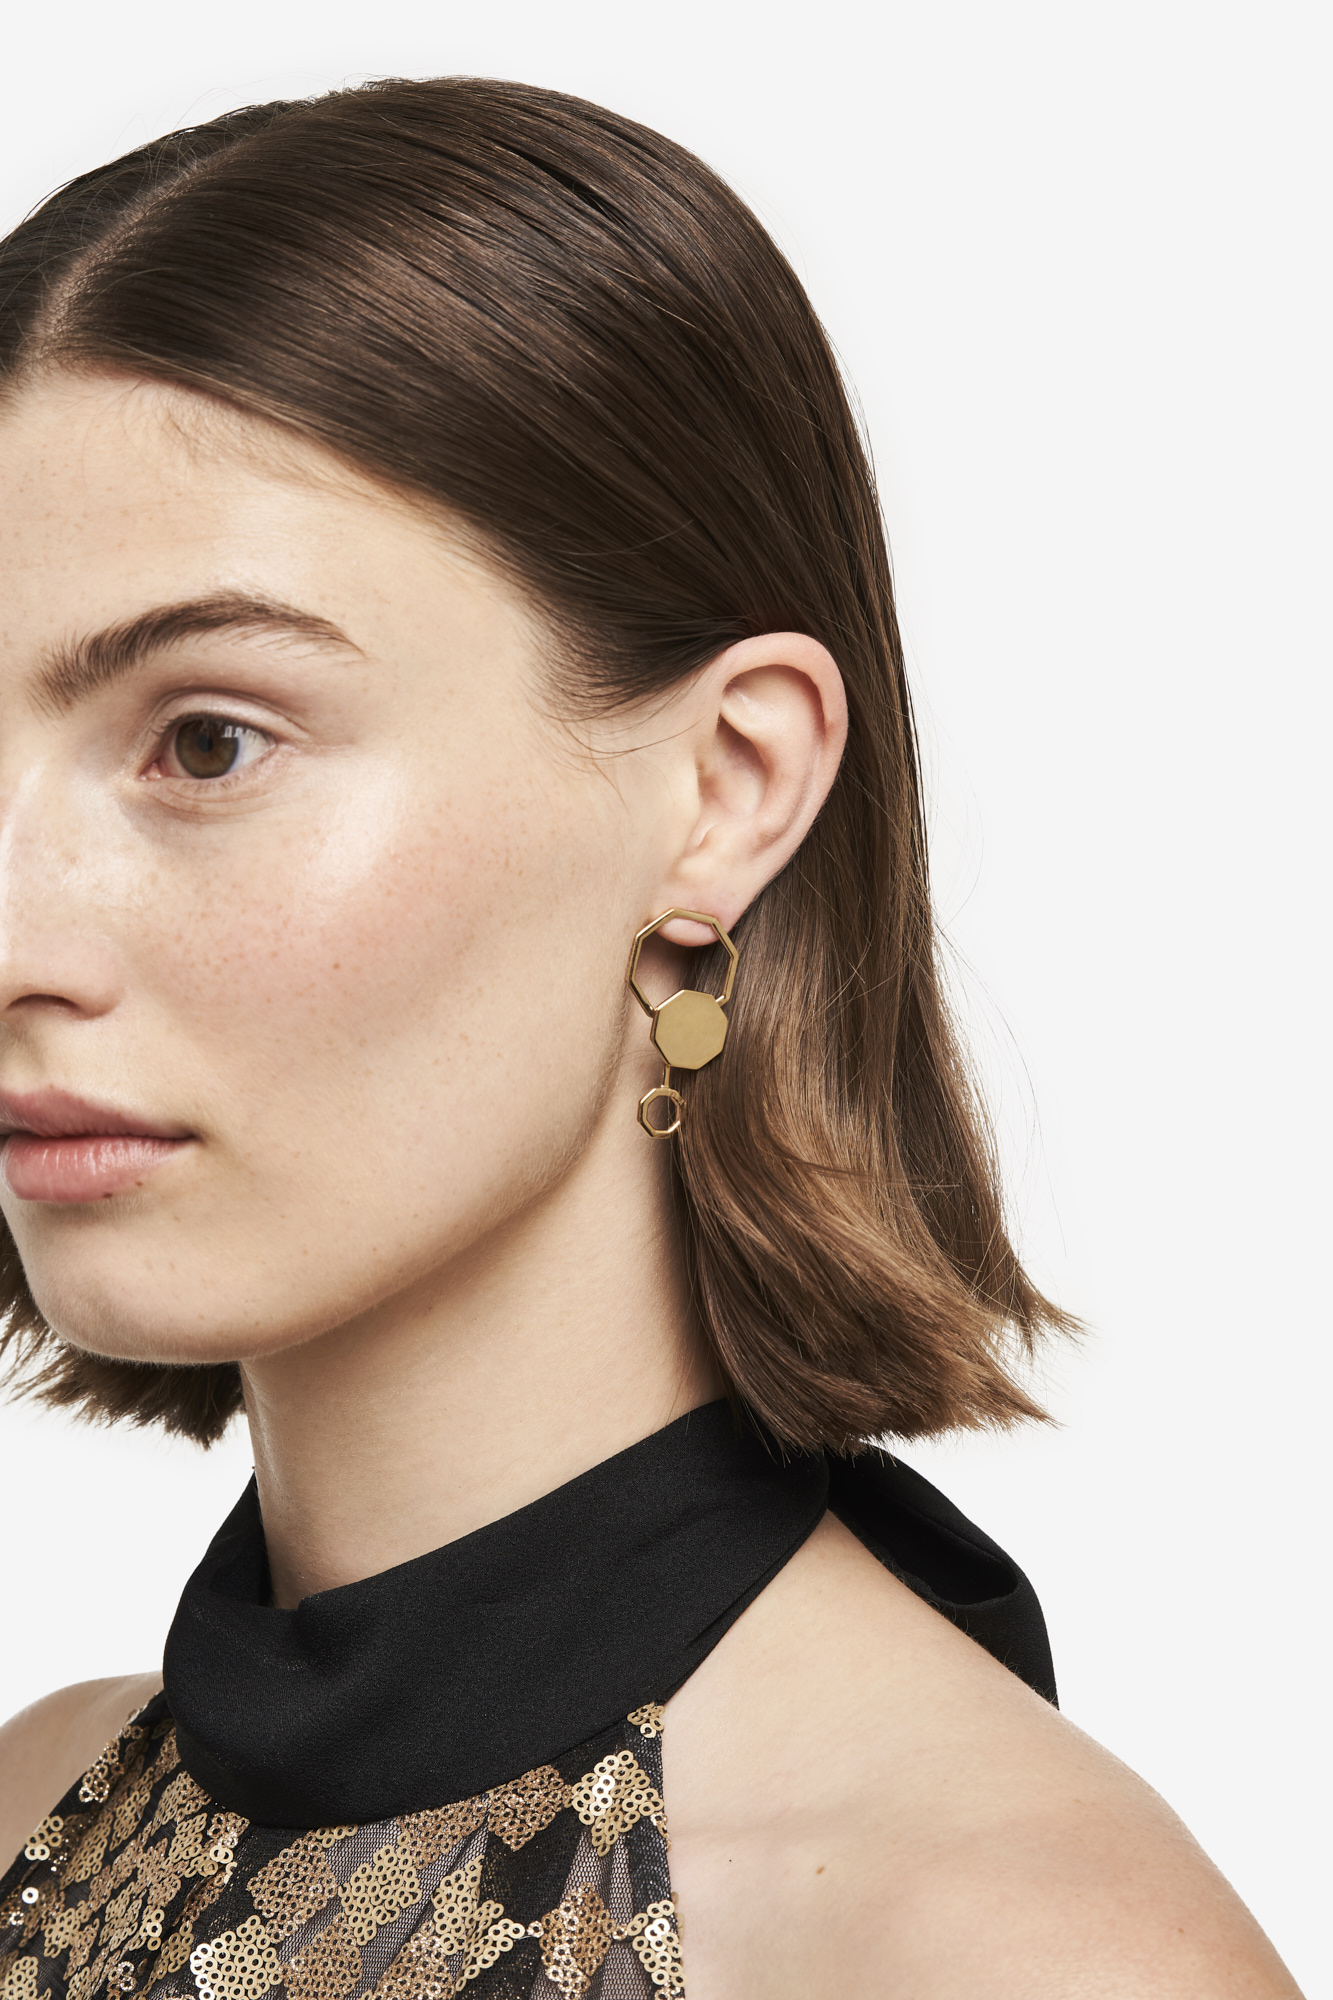 19-03-5-1-006-113-09_Beehaive Earring_Gold Plated_01